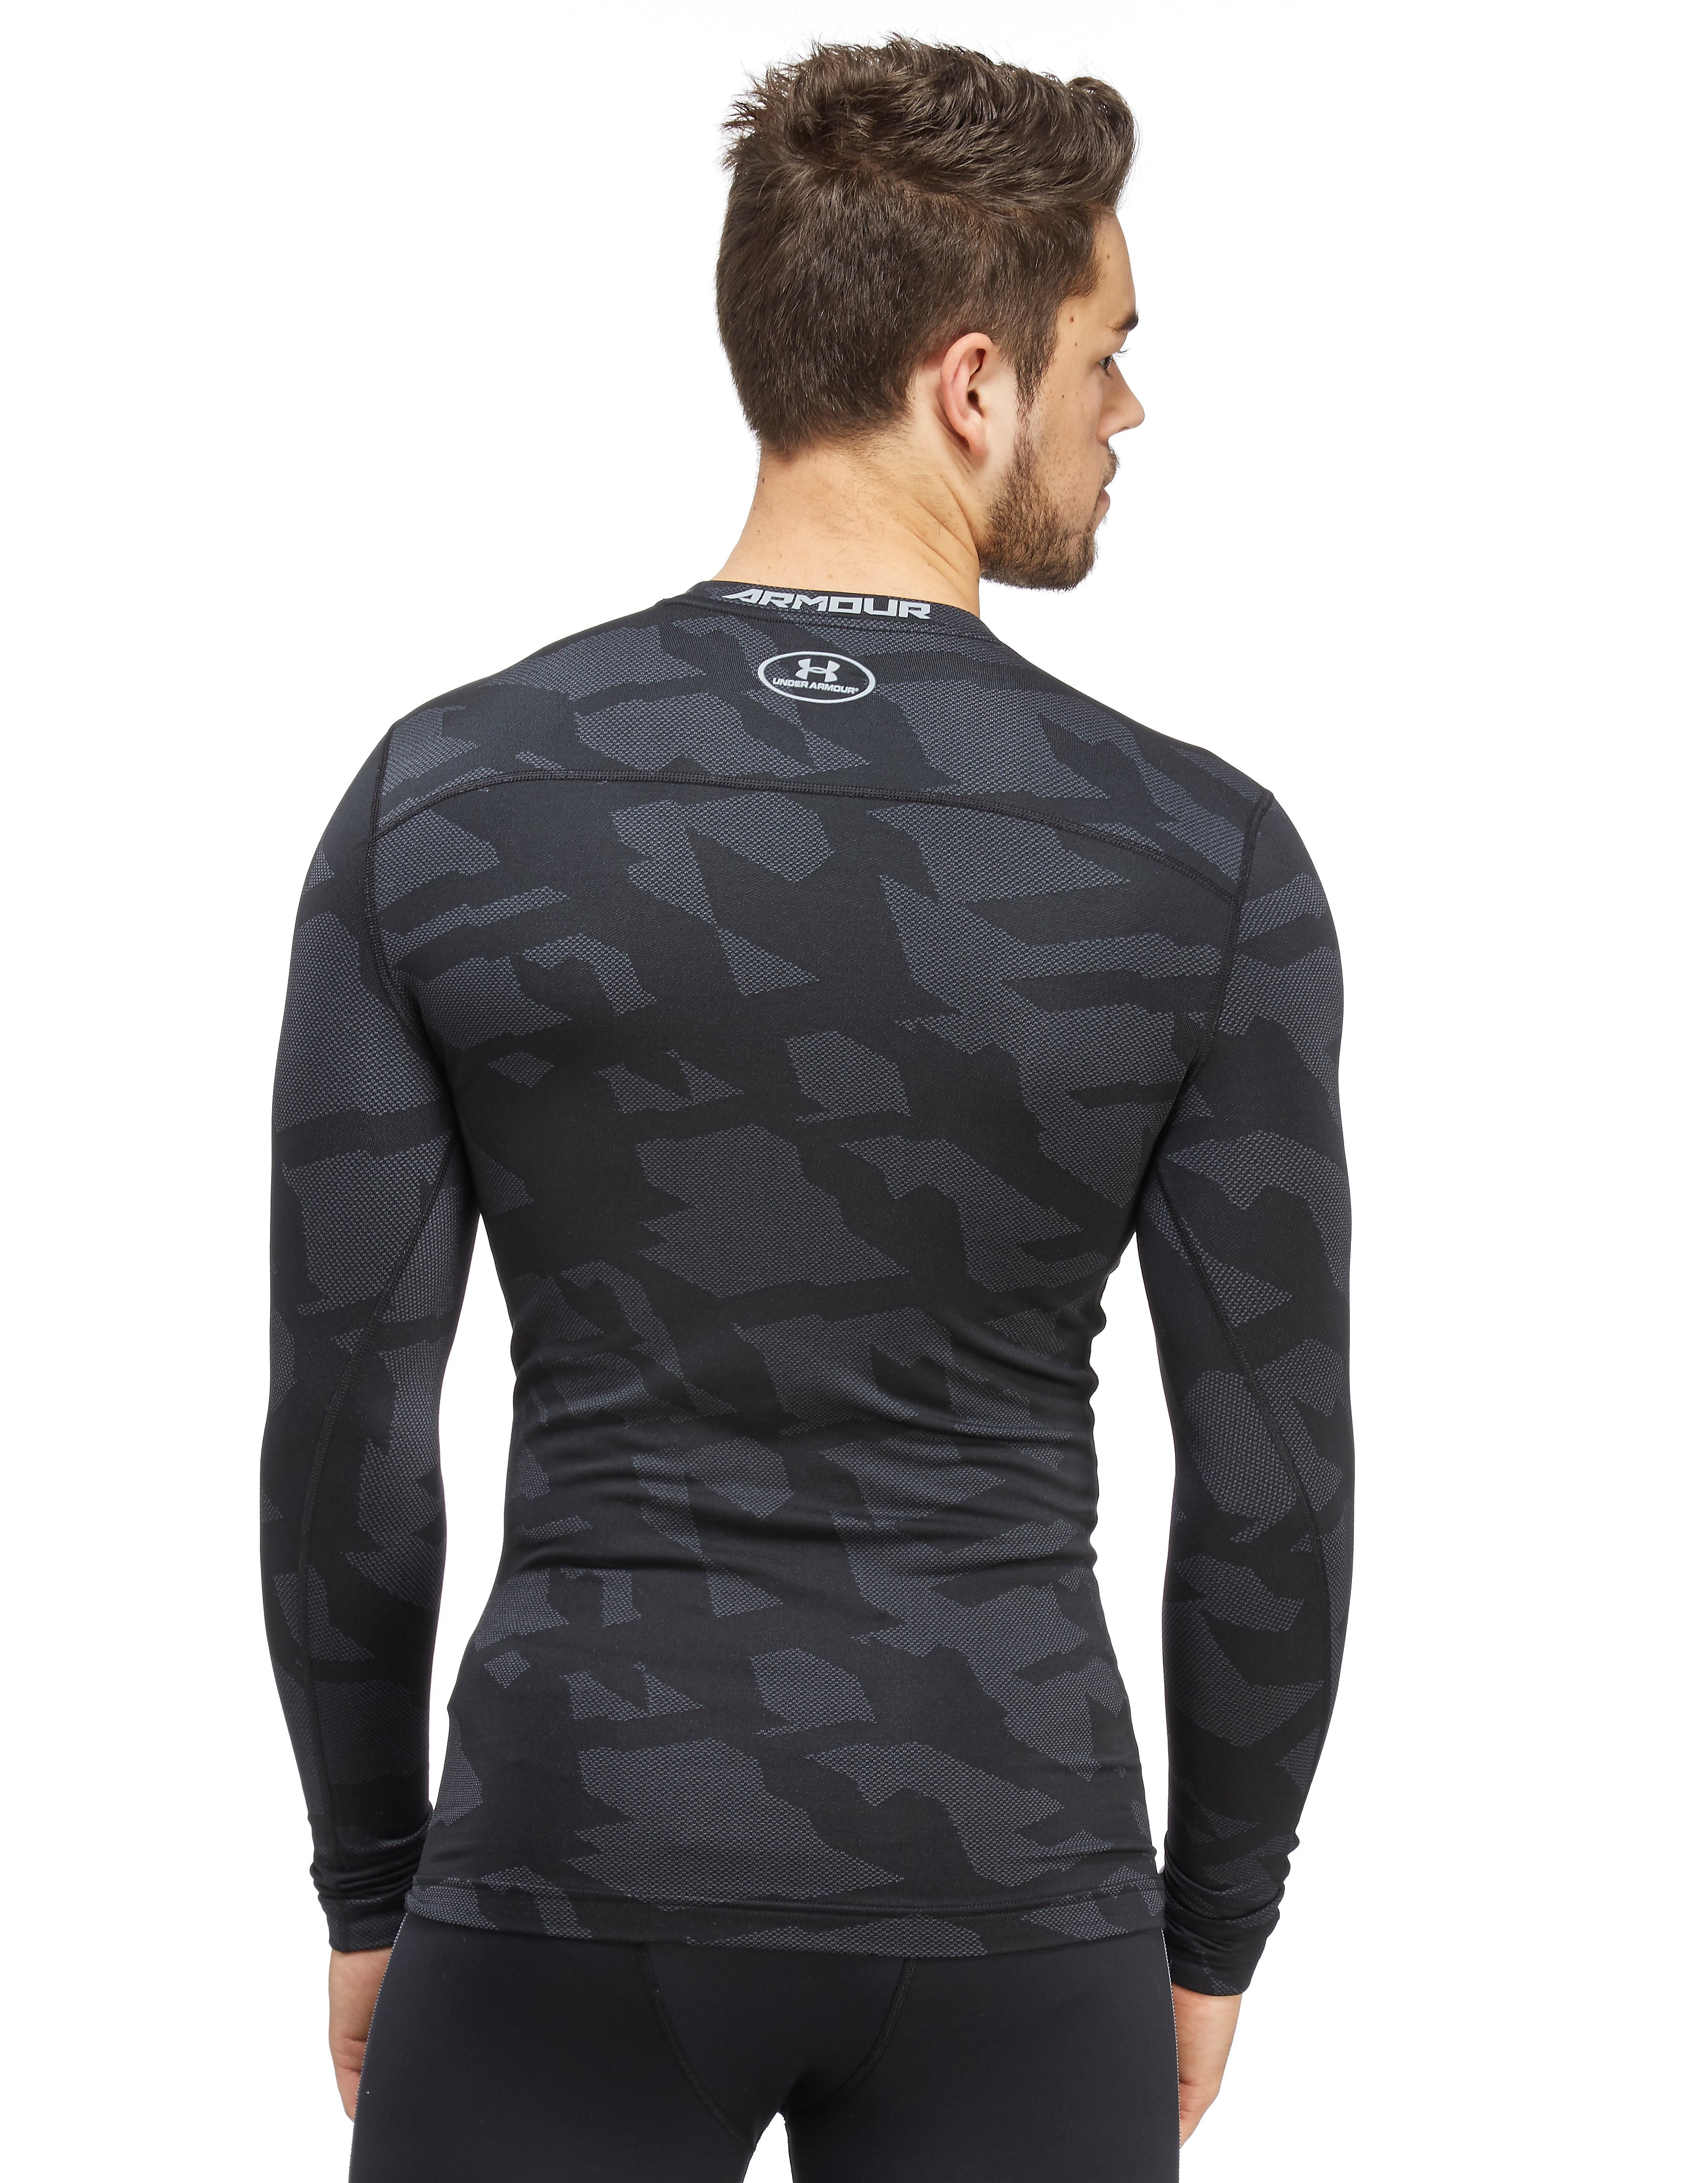 Under Armour ColdGear Armour Jacquard Longsleeve